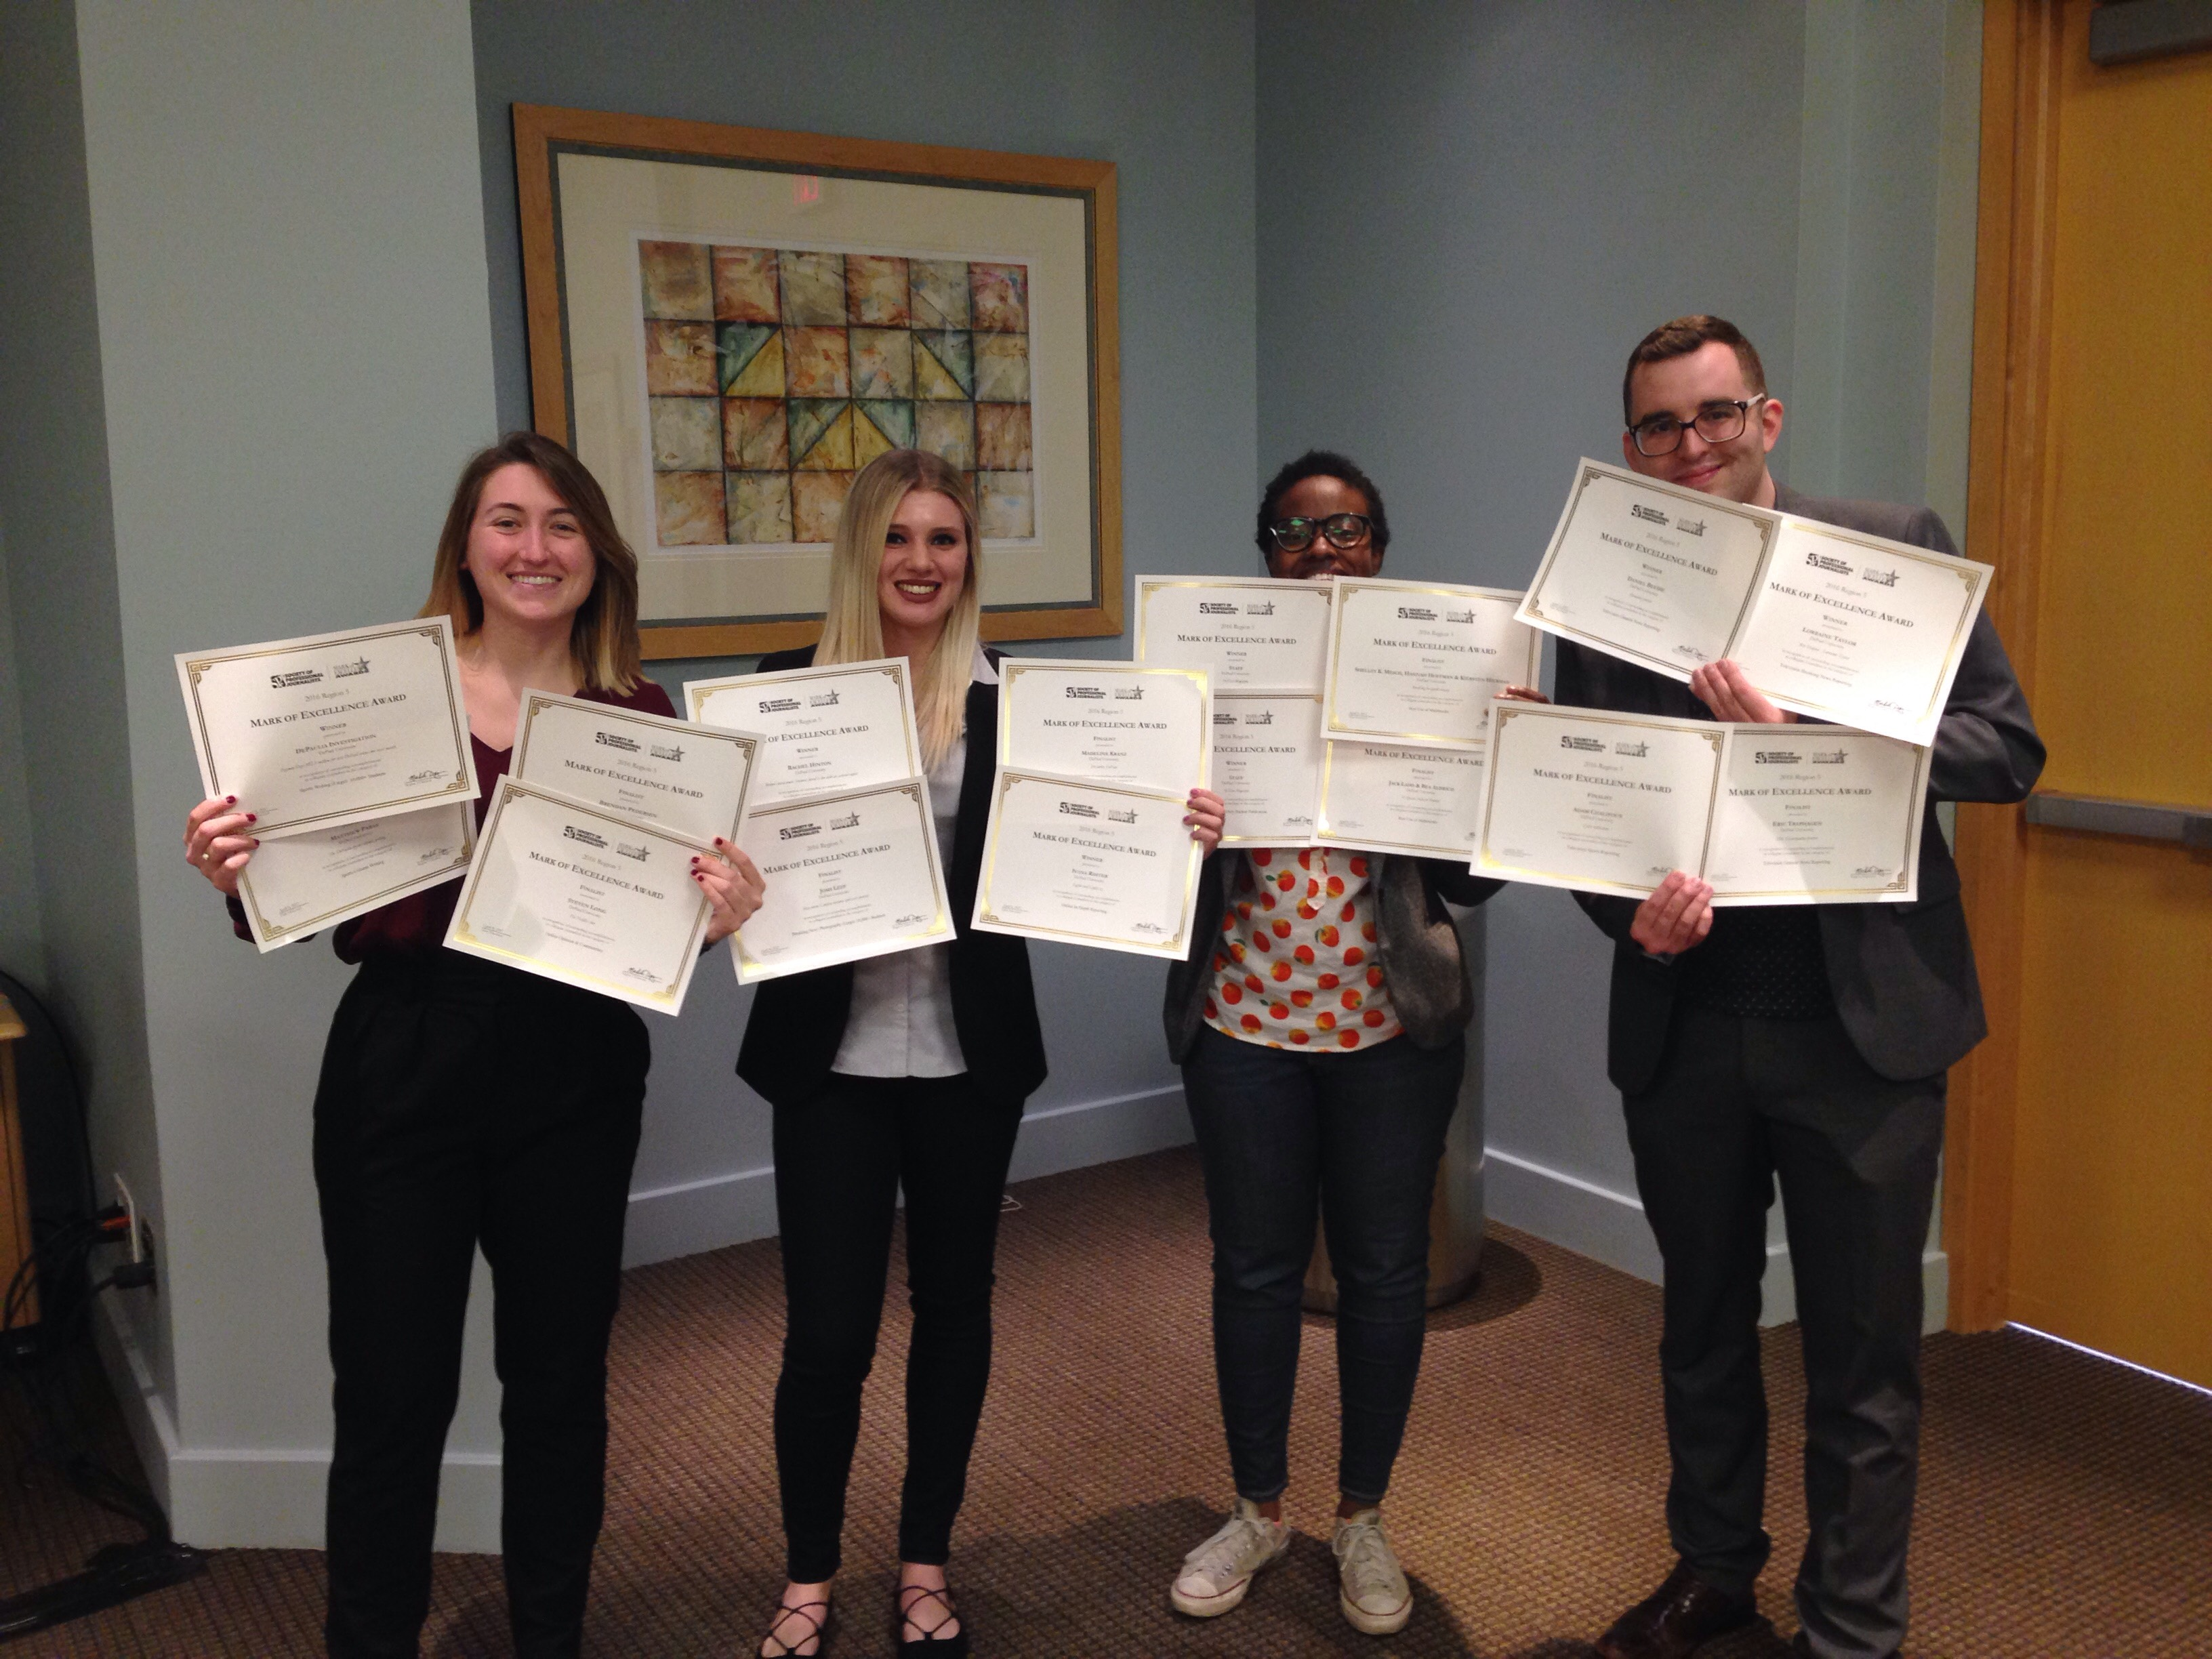 DePaul SPJ/ONA Chapter officers pose with certificates for the 16 awards won by DePaul student journalists at last weekend's SPJ Region 5 conference in Indianapolis. From left, Danielle Church, Ally Pruitt, Rachel Hinton and Kyle Woosley.